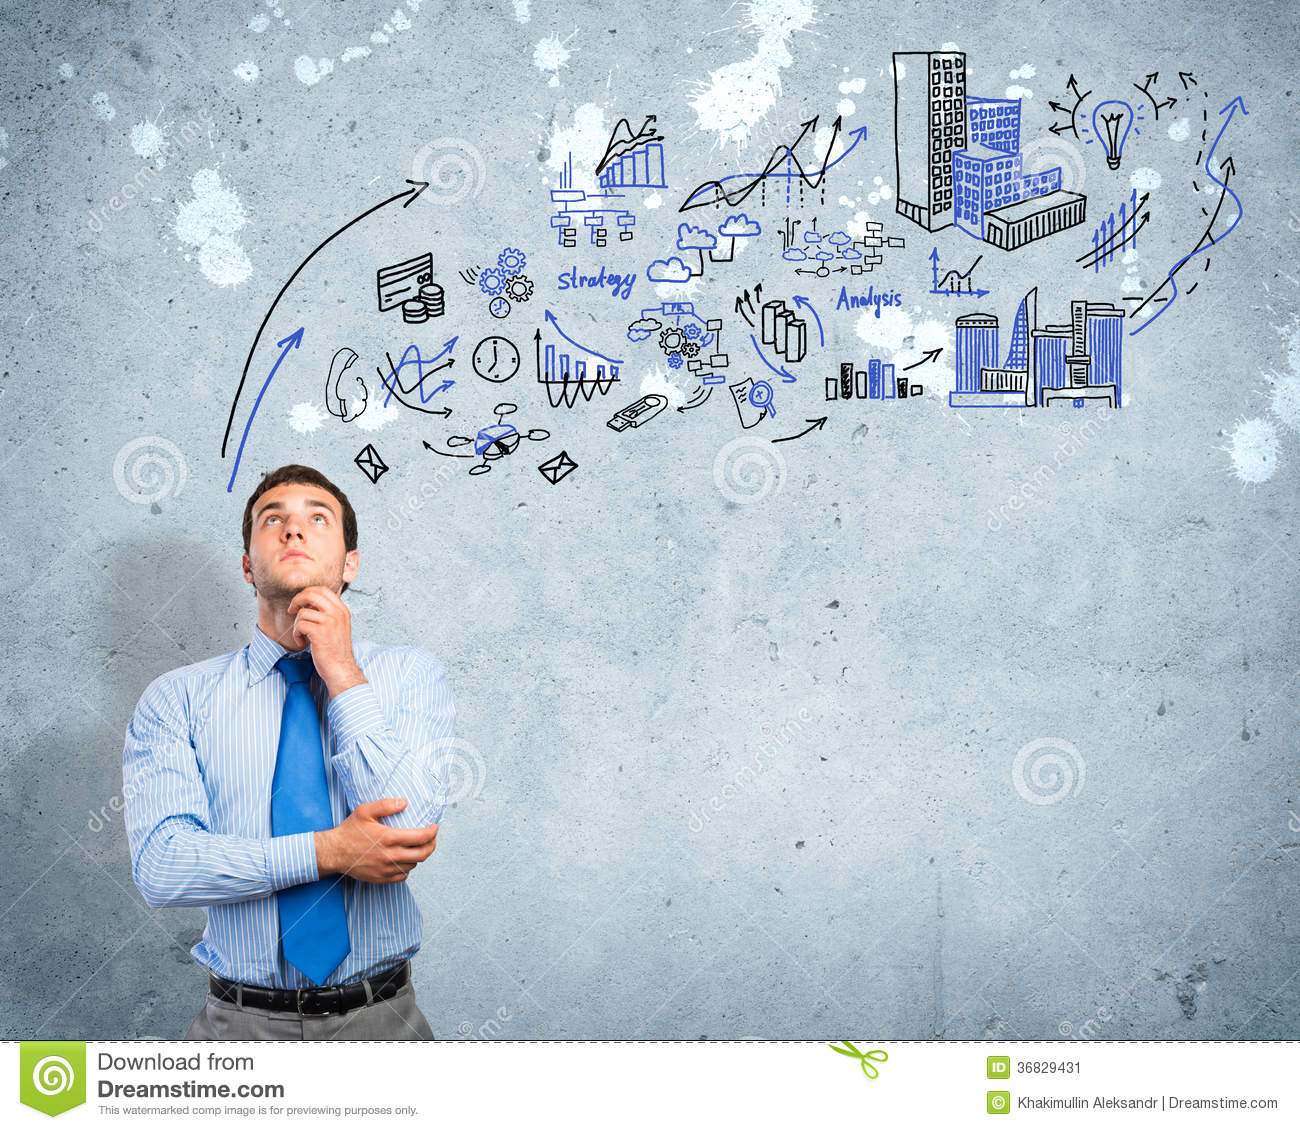 thinking-business-man-sketch-background-